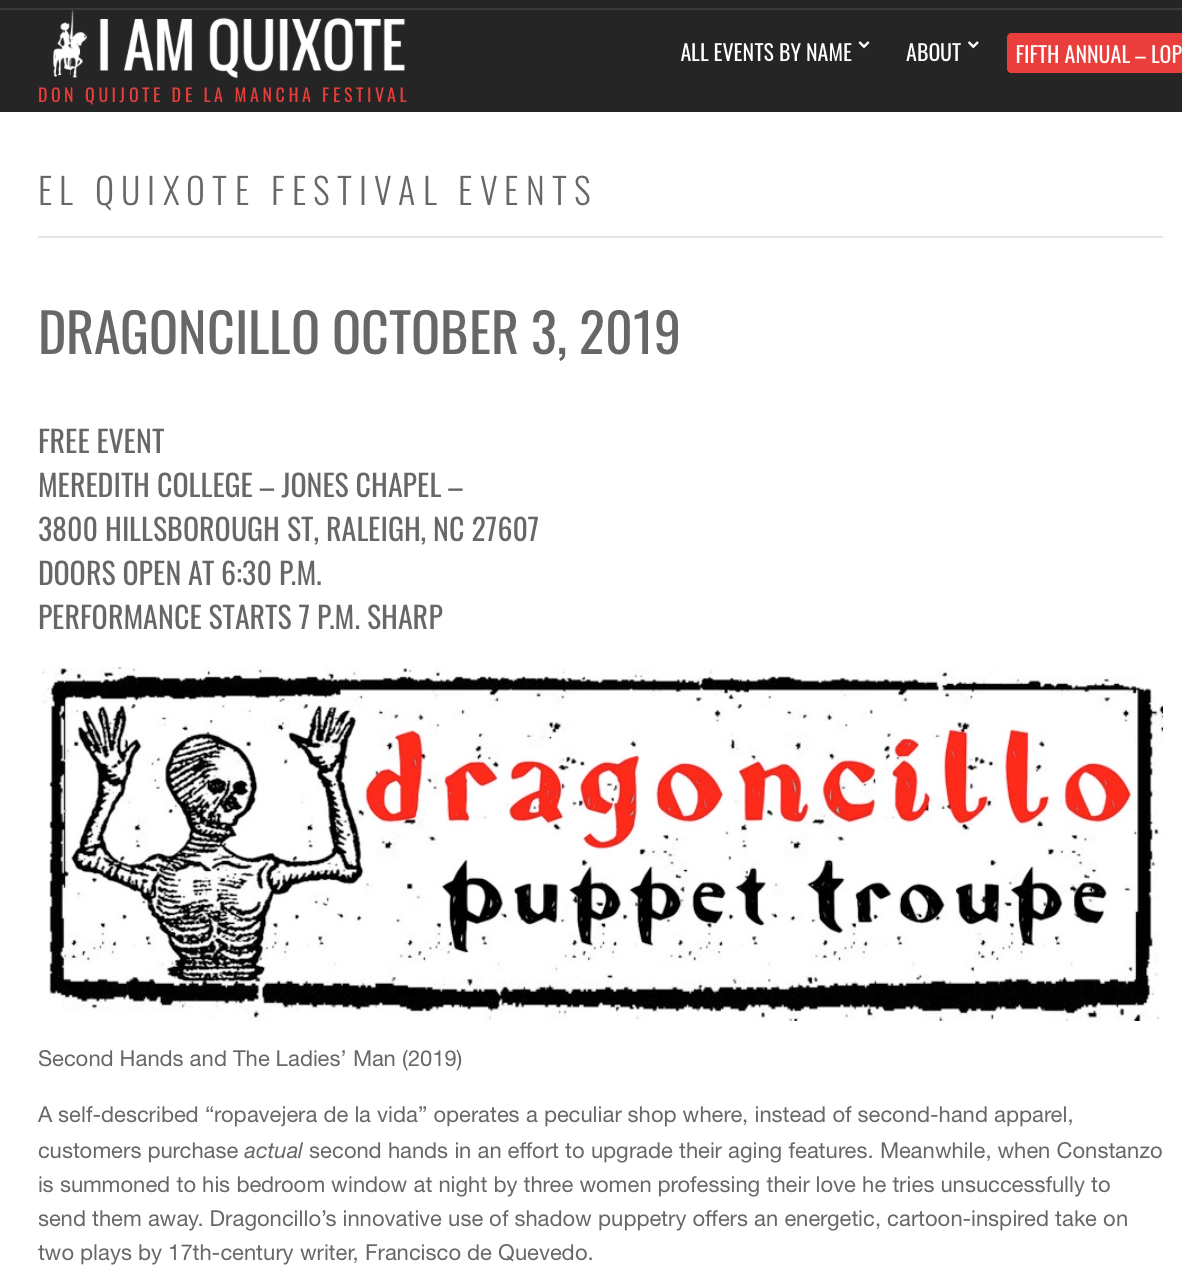 Dragoncillo was at the fifth annual I AM QUIXOTE FESTIVAL, in Raleigh, North Carolina, October 3-4, 2019! - For more information visit:https://iamquixote.com/service/dragoncillo/